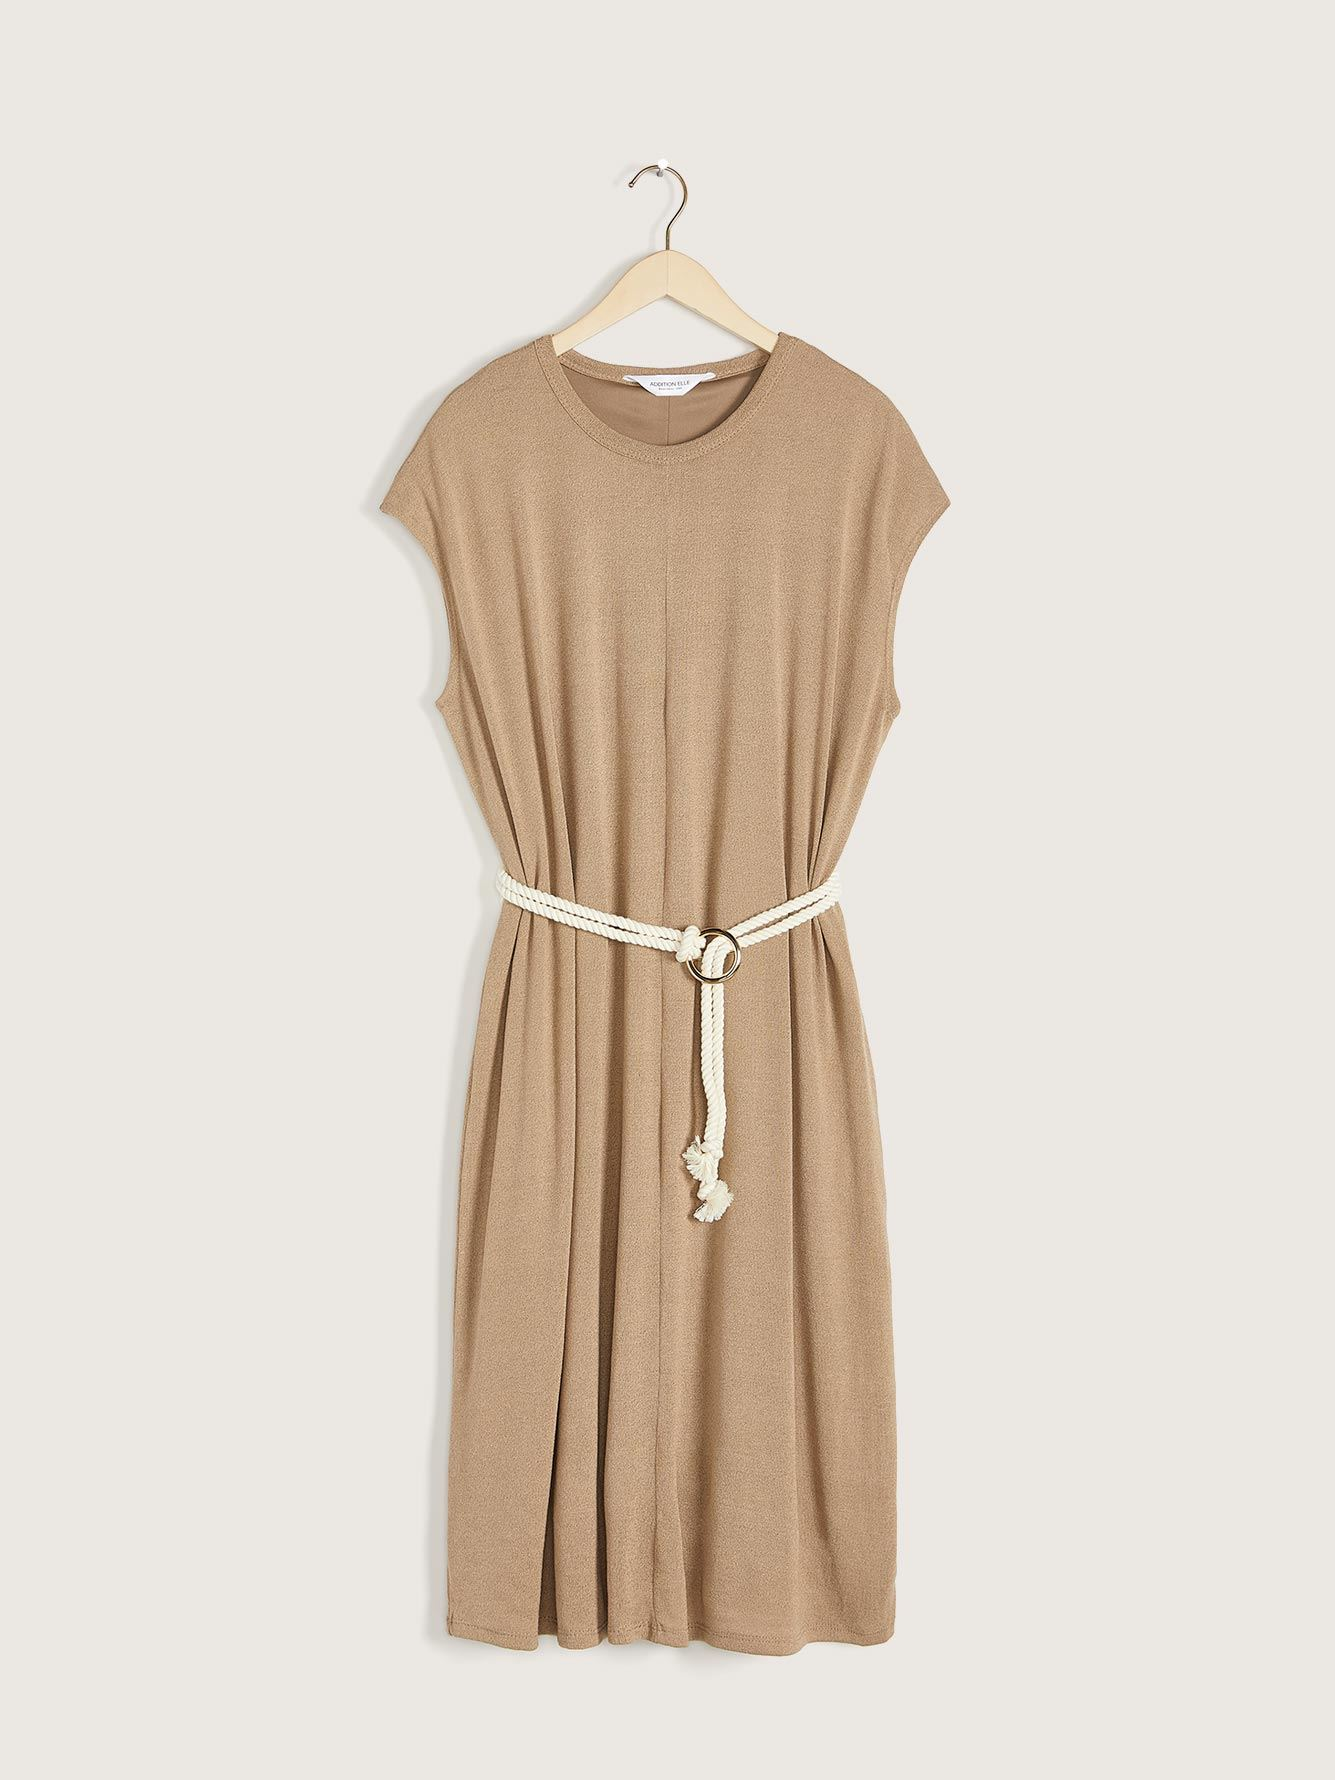 Solid Midi Dress with Rope Belt - Addition Elle